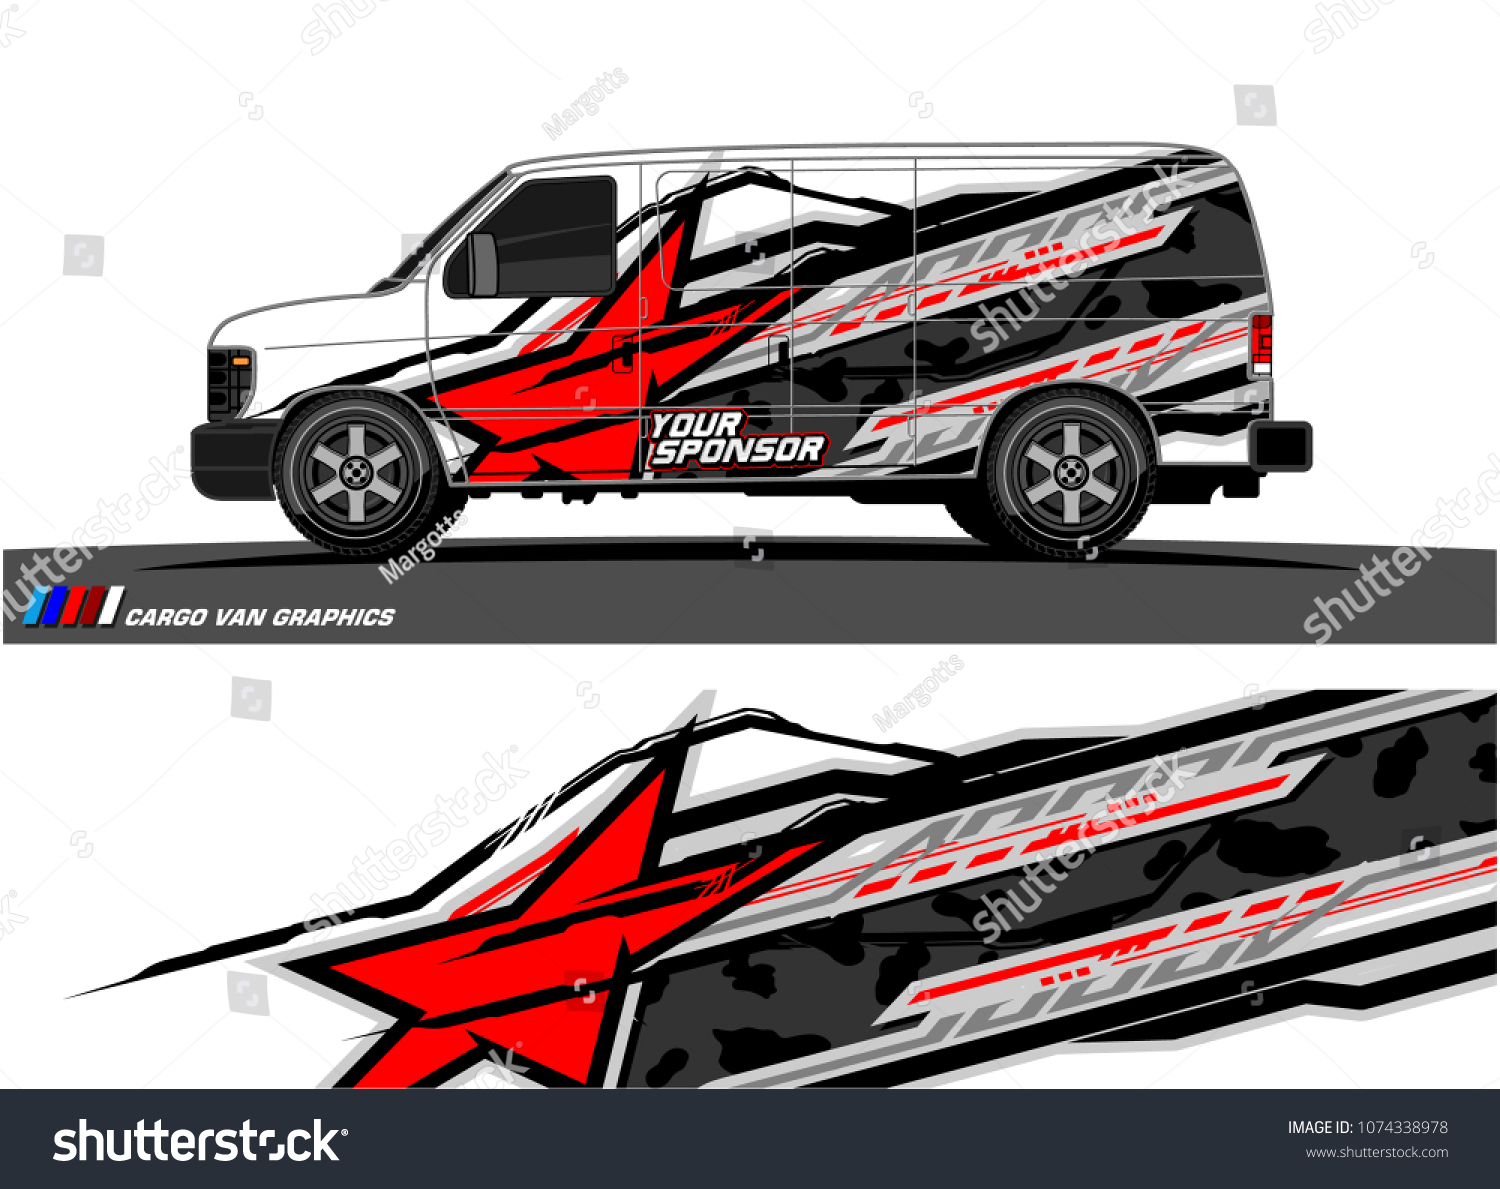 Cargo van graphic abstract racing shape with modern camouflage design for vehicle vinyl wrap